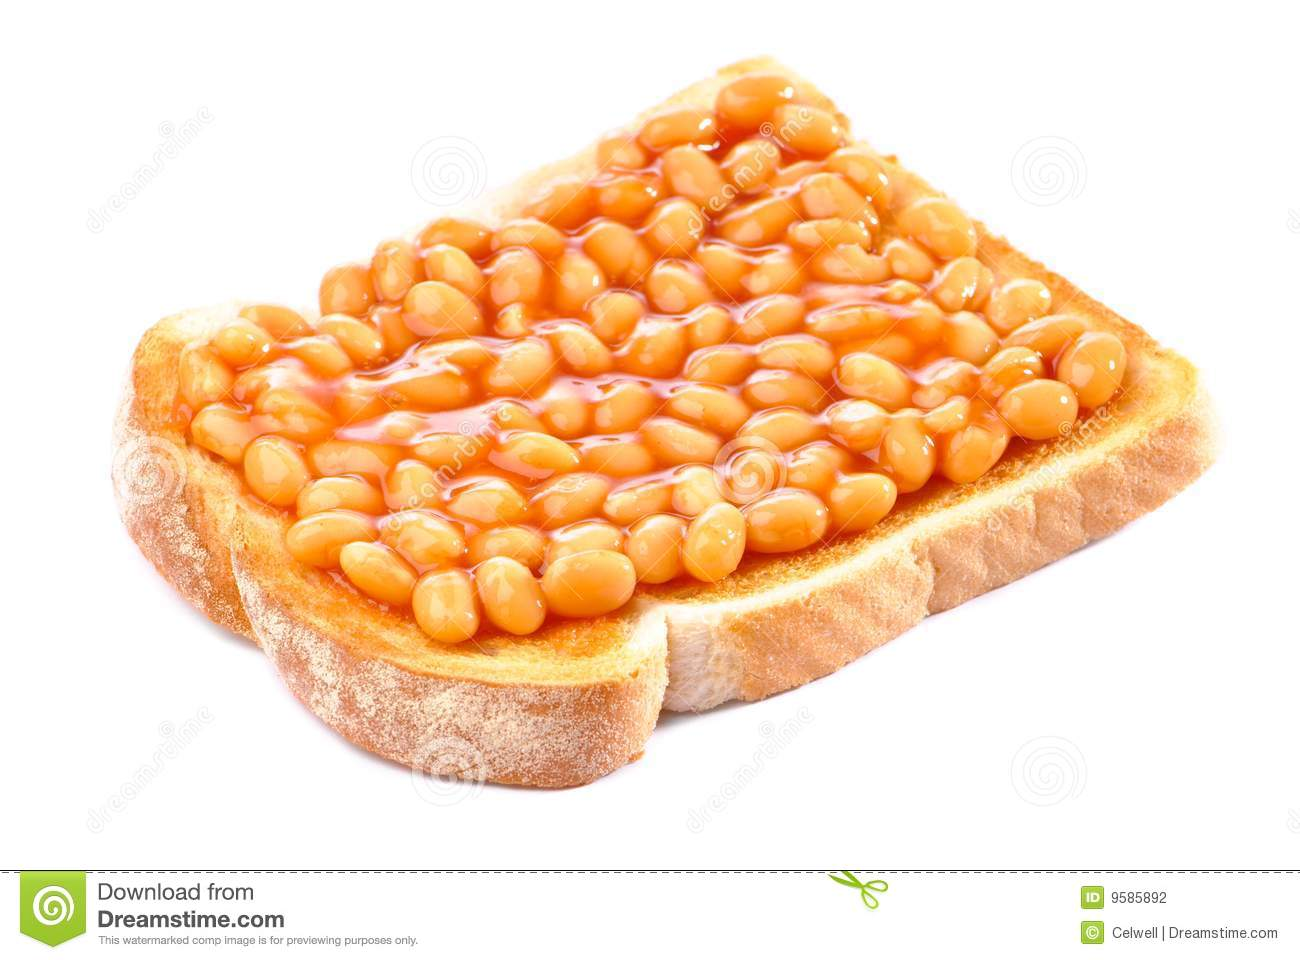 baked beans on toast stock photography image 9585892 celtic cross clip art free download free celtic cross clipart black and white